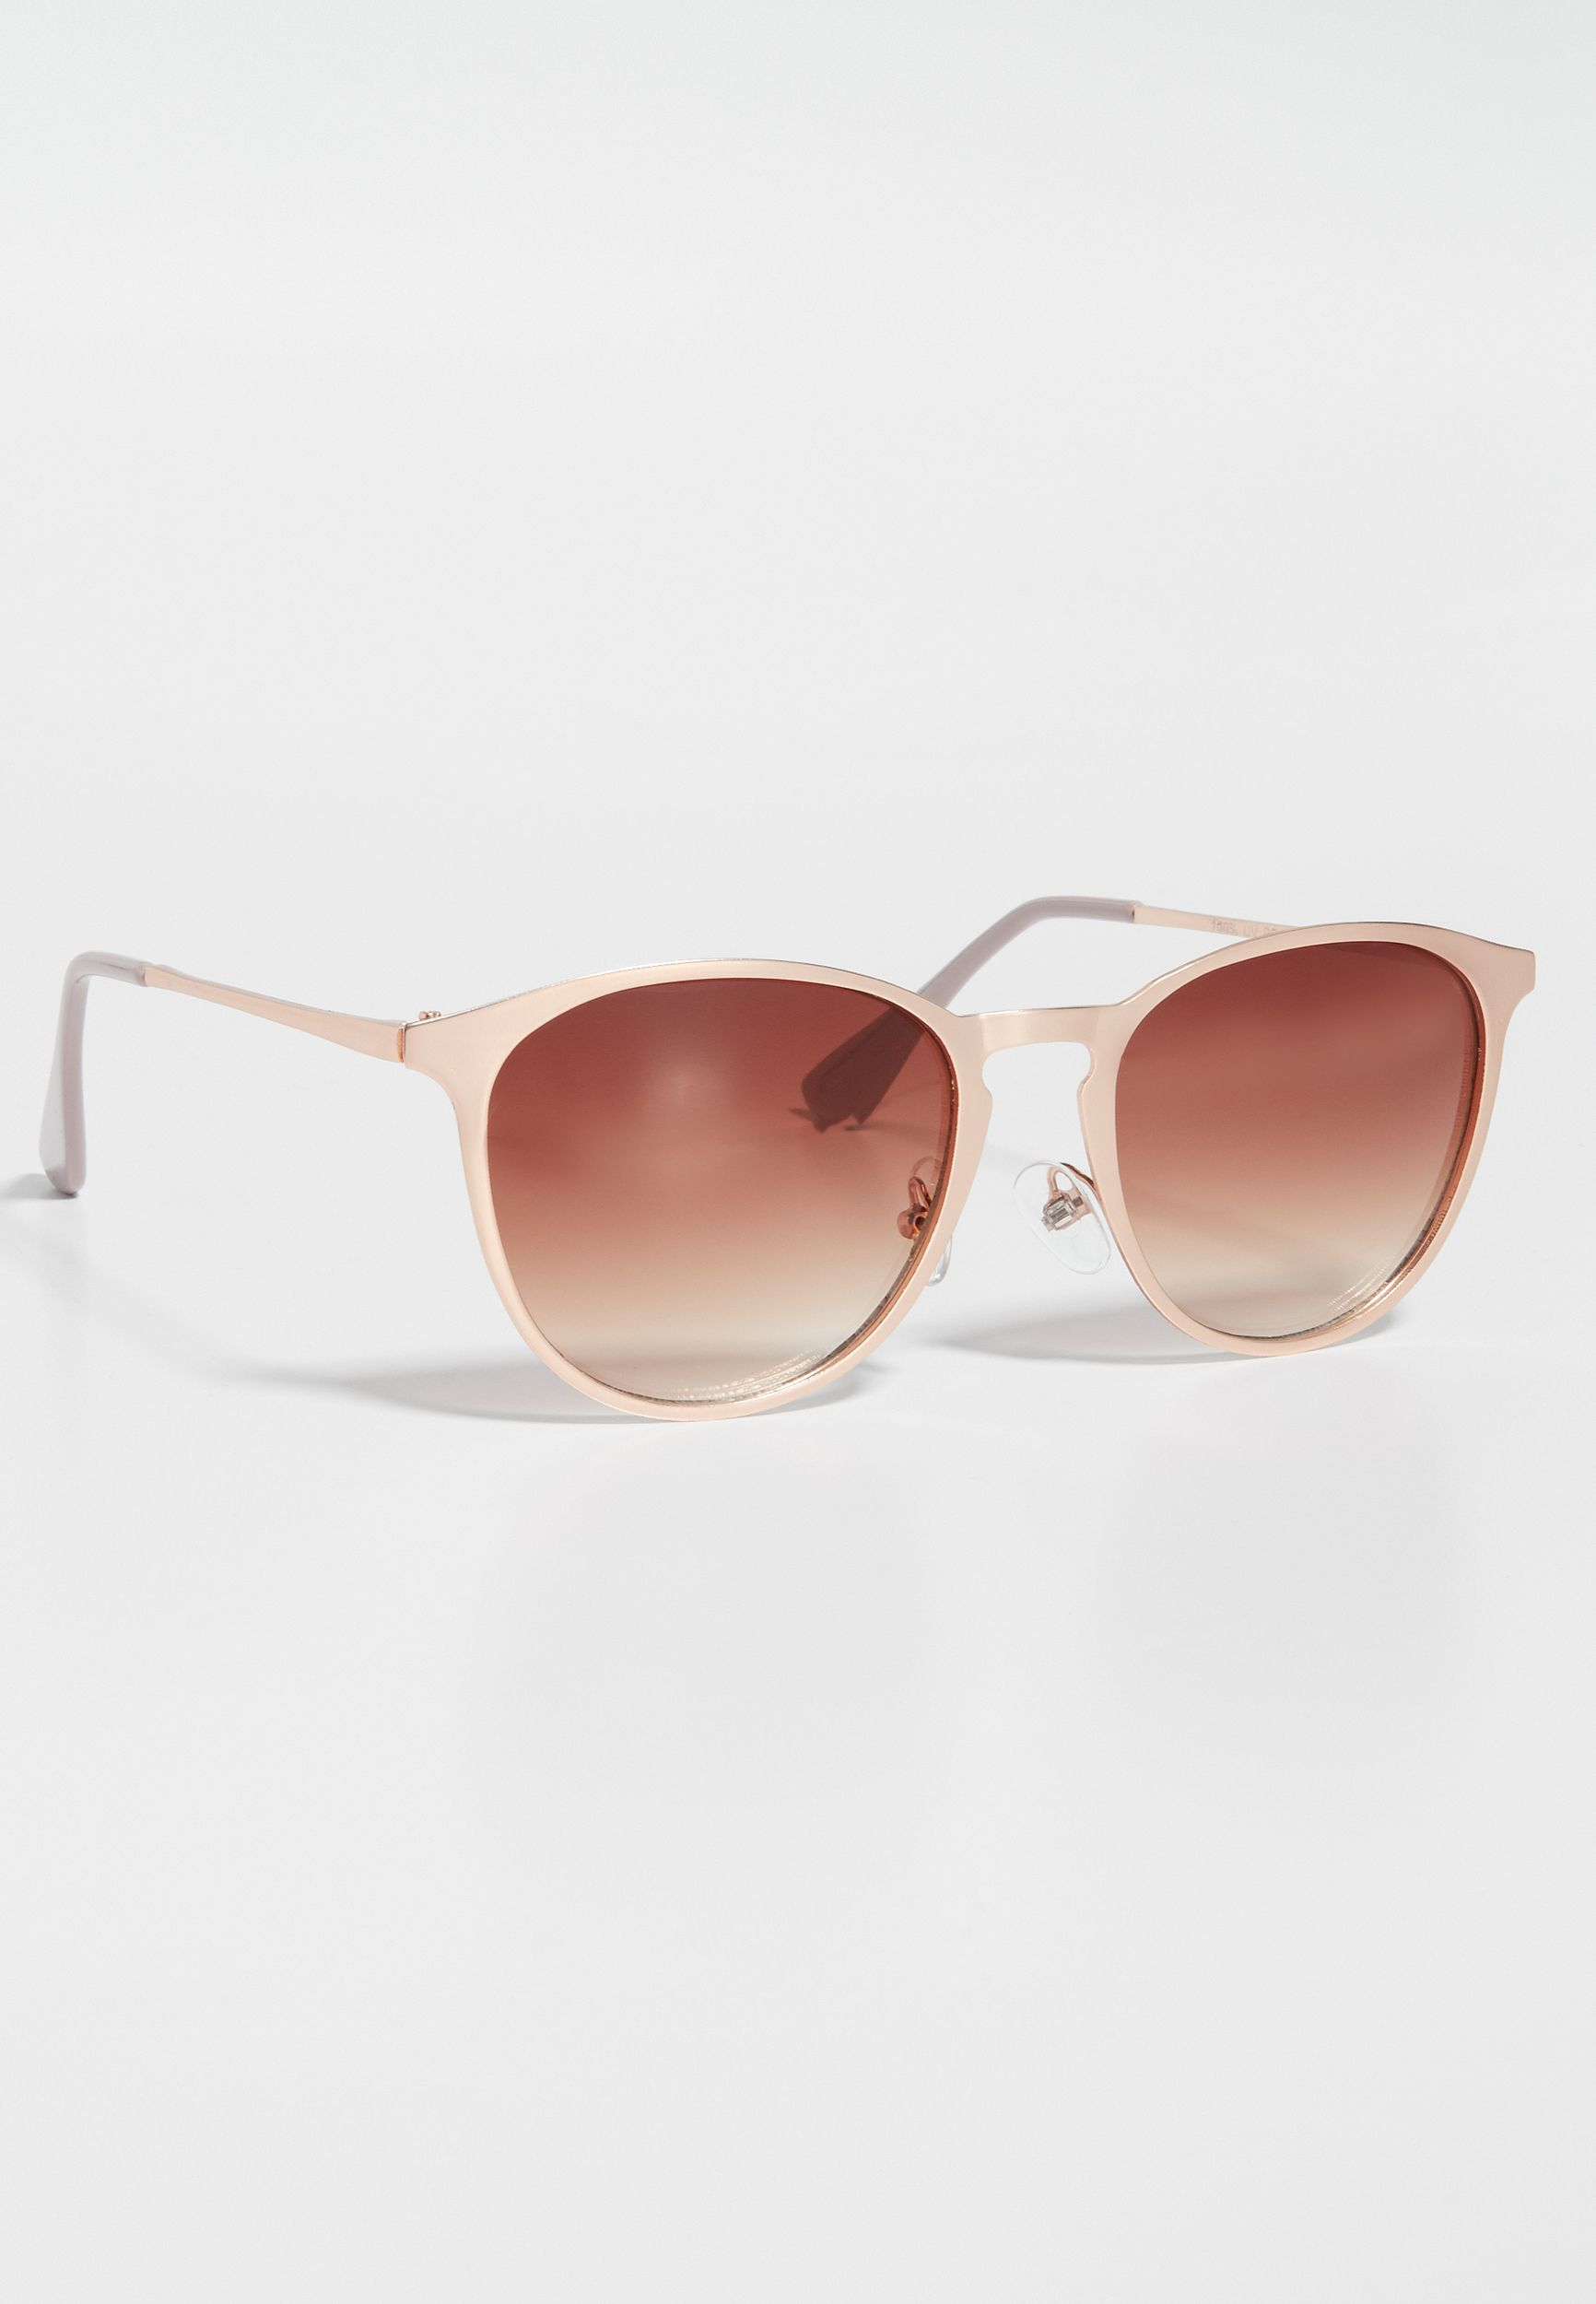 57624e5f39d87 rose goldtone slim metal cat eye sunglasses (original price